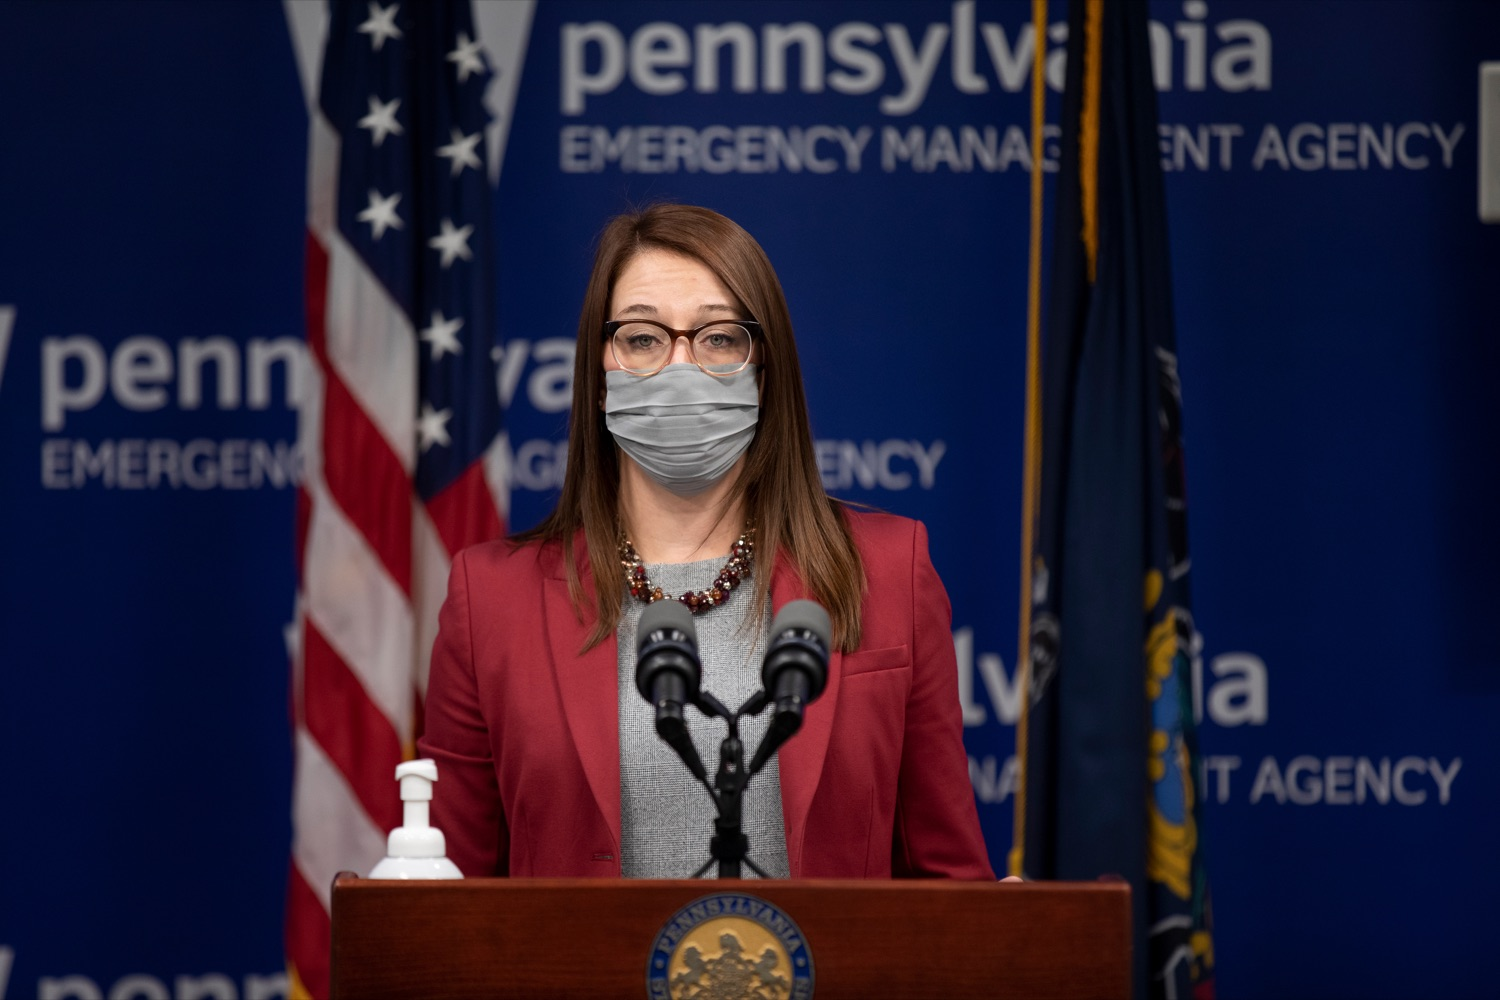 "<a href=""https://filesource.wostreaming.net/commonwealthofpa/photo/18533_DOH_Vaccine_NK_006.jpg"" target=""_blank"">⇣ Download Photo<br></a>Department of Health Senior Advisor Lindsey Mauldin speaks during a virtual press conference inside Pennsylvania Emergency Management Agency in Harrisburg on Friday, February 12, 2021."